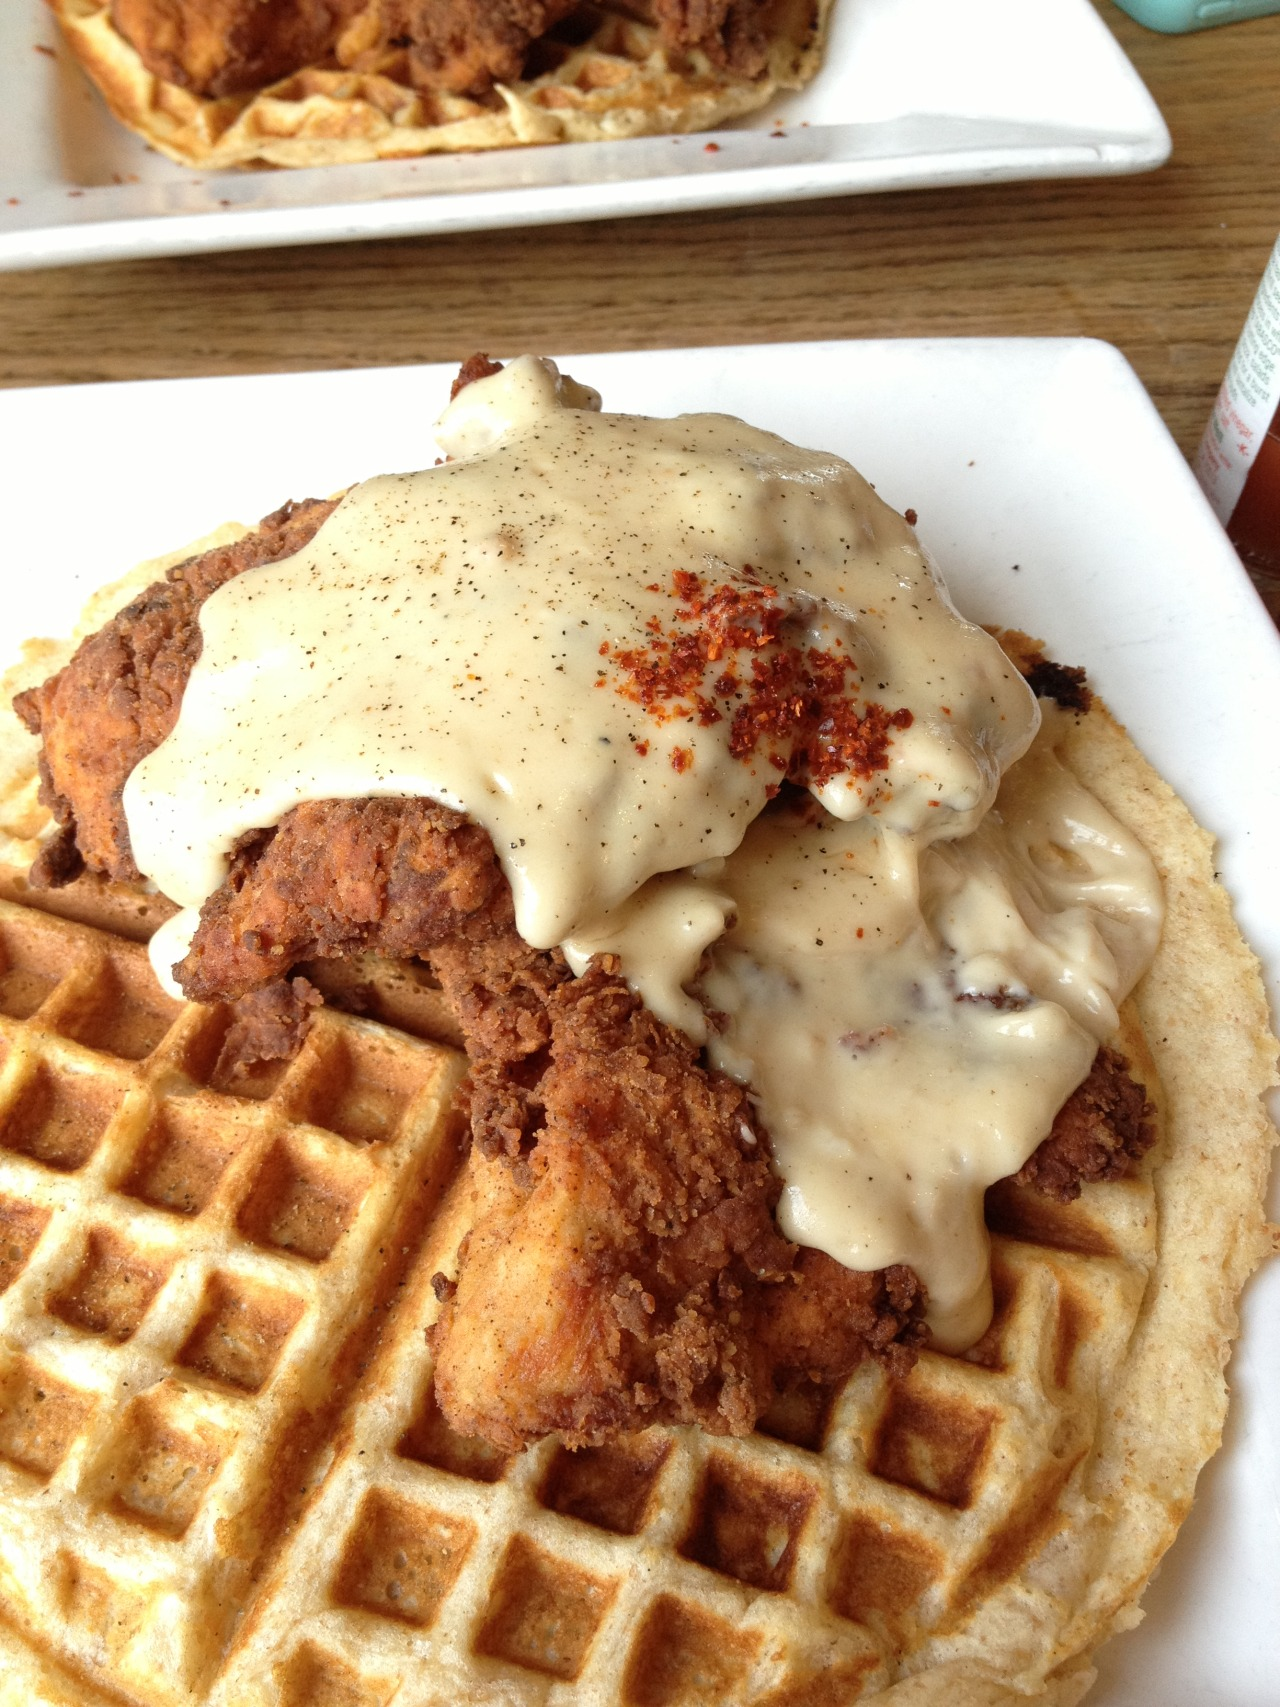 Chicken & Waffles! Finally got around to trying this recent obsession of food culture and I have to say it definitely lived up to all expectations. Went to 900 Grayson in Berkeley to try it out. Suggestion is to get both the gravy and maple syrup (my friend and I got each kind and split). The combination of sweet and salty is to die for! [Taken 2/16/13 at 900 Grayson in Berkeley, CA using iPhone 4S]